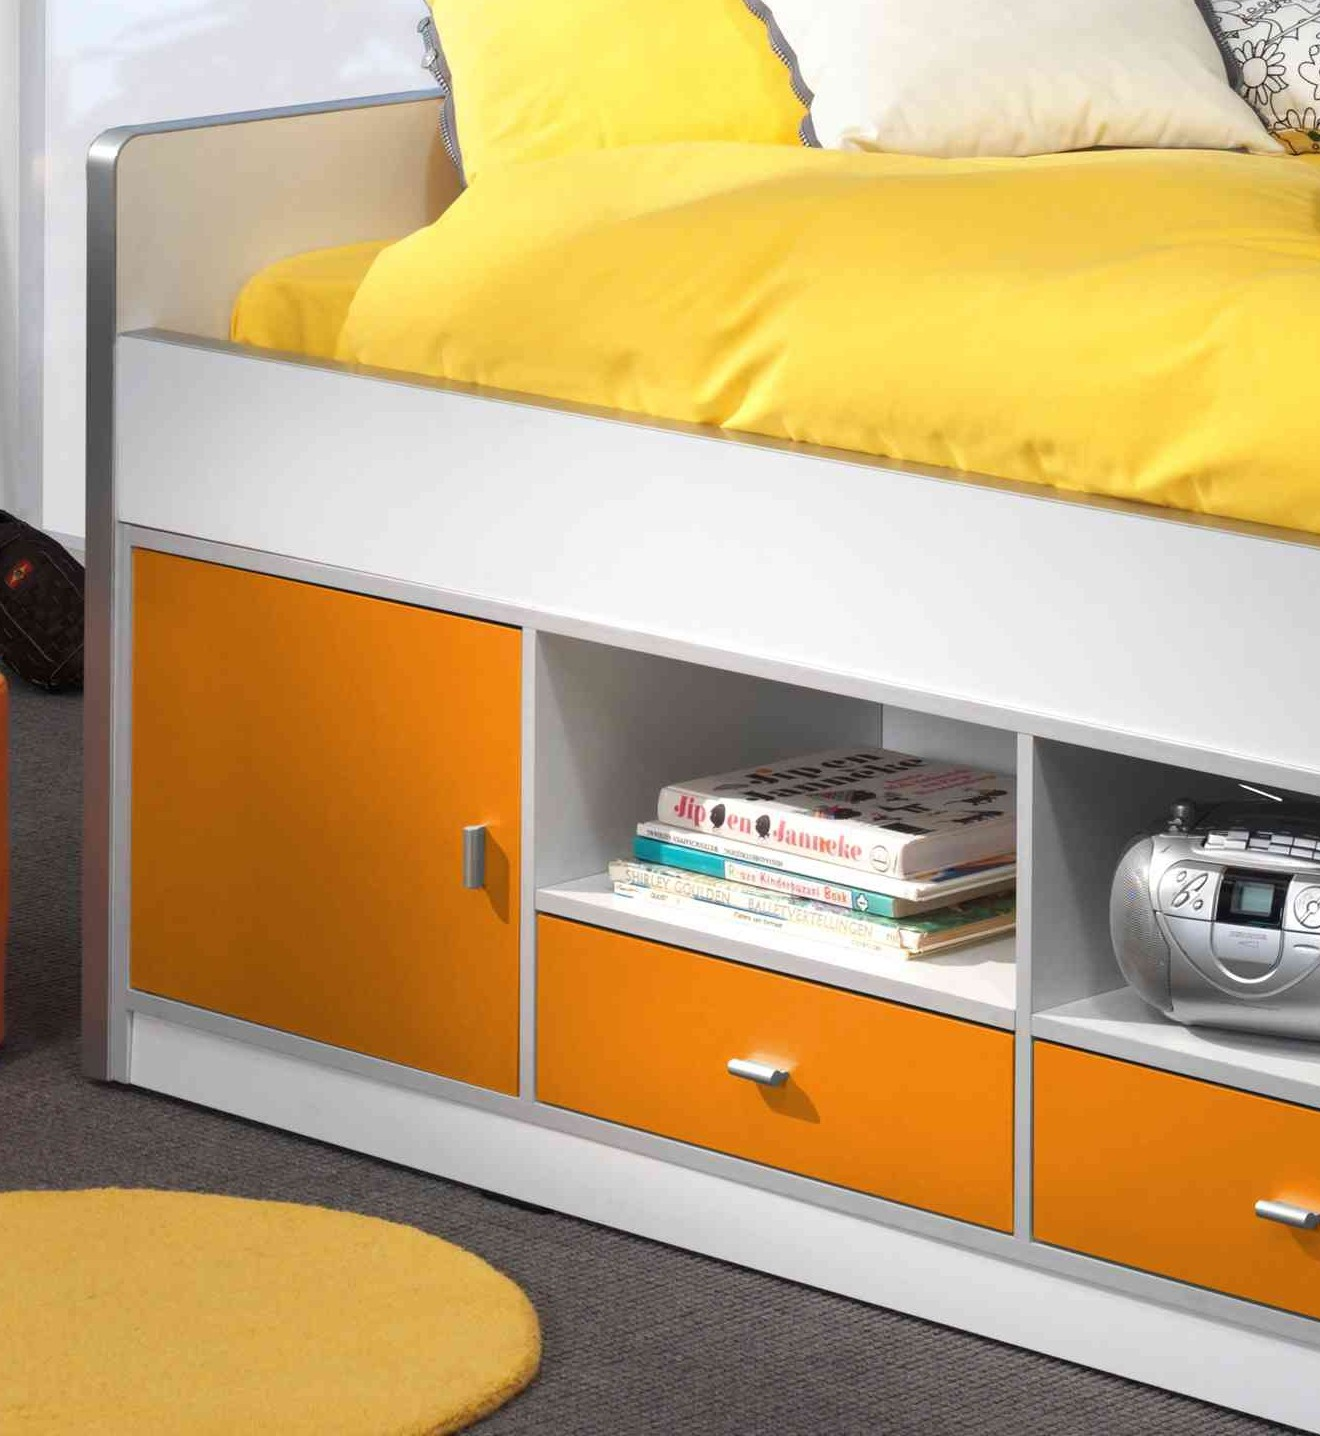 neu kojenbett bonny kinderbett einzelbett mit schubladen 90x200 weiss orange. Black Bedroom Furniture Sets. Home Design Ideas